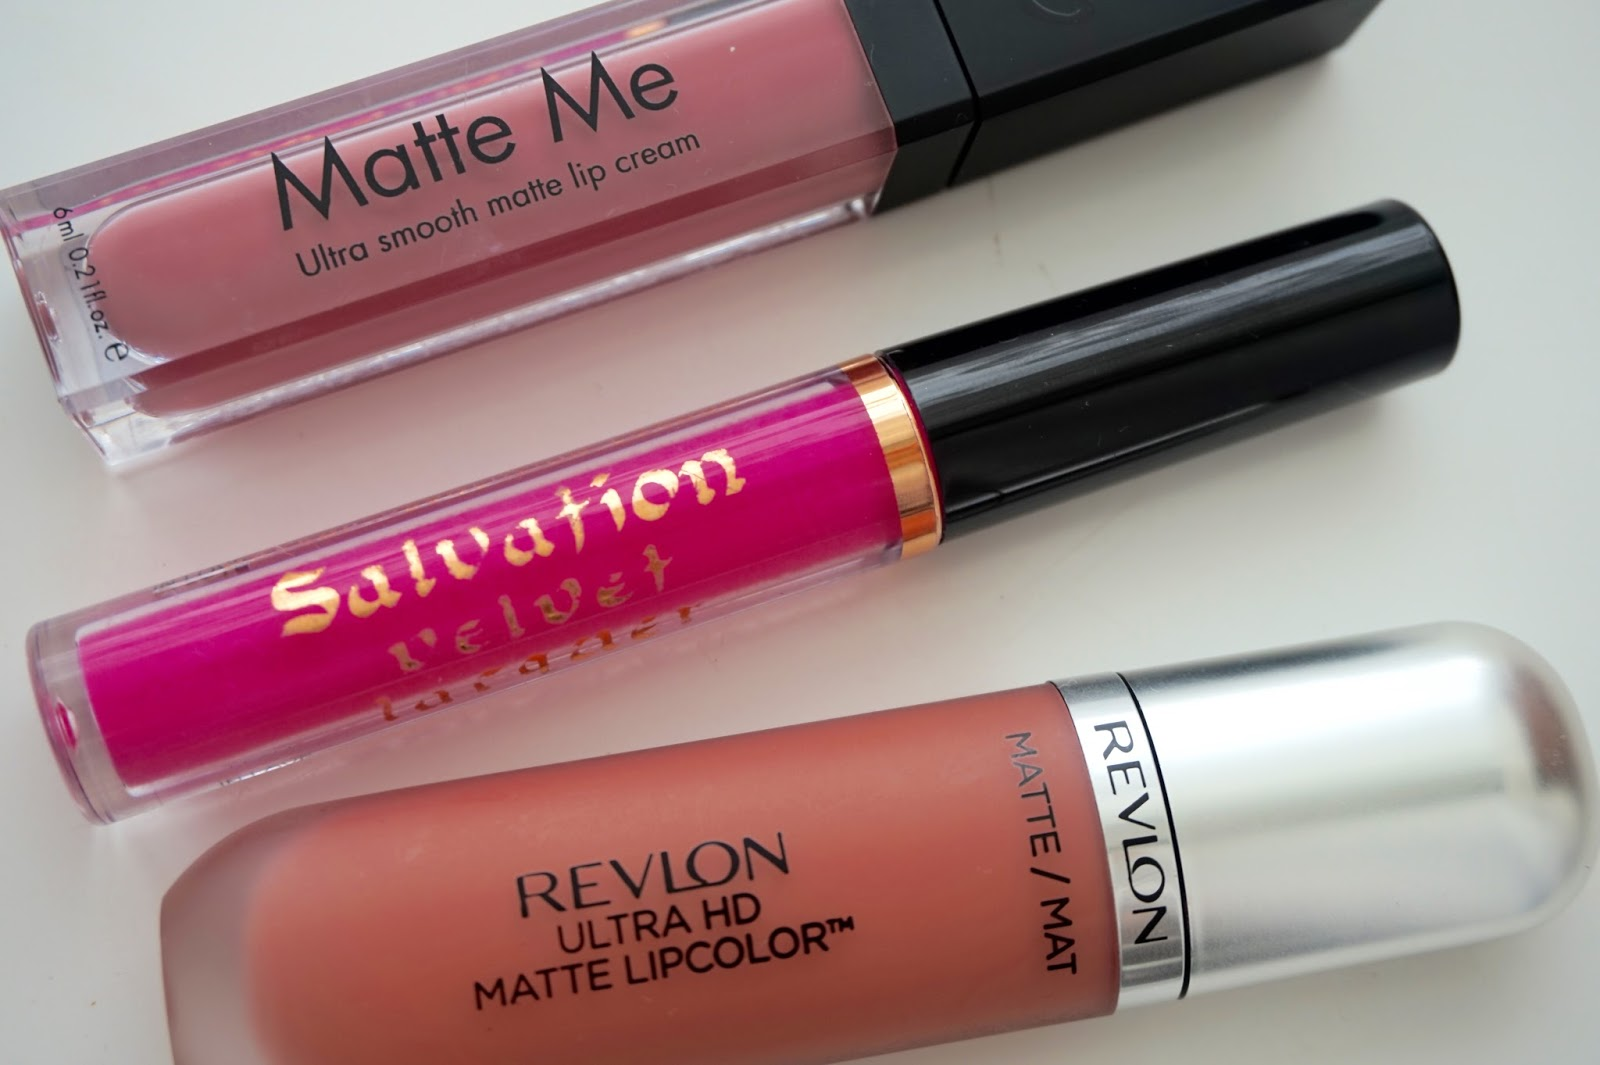 Liquid Matte Lipsticks are ALL of the rage these days. Thanks to Miss Kylie Jenner, girls are going absolutely crazy for any kind of matte liquid lipstick.